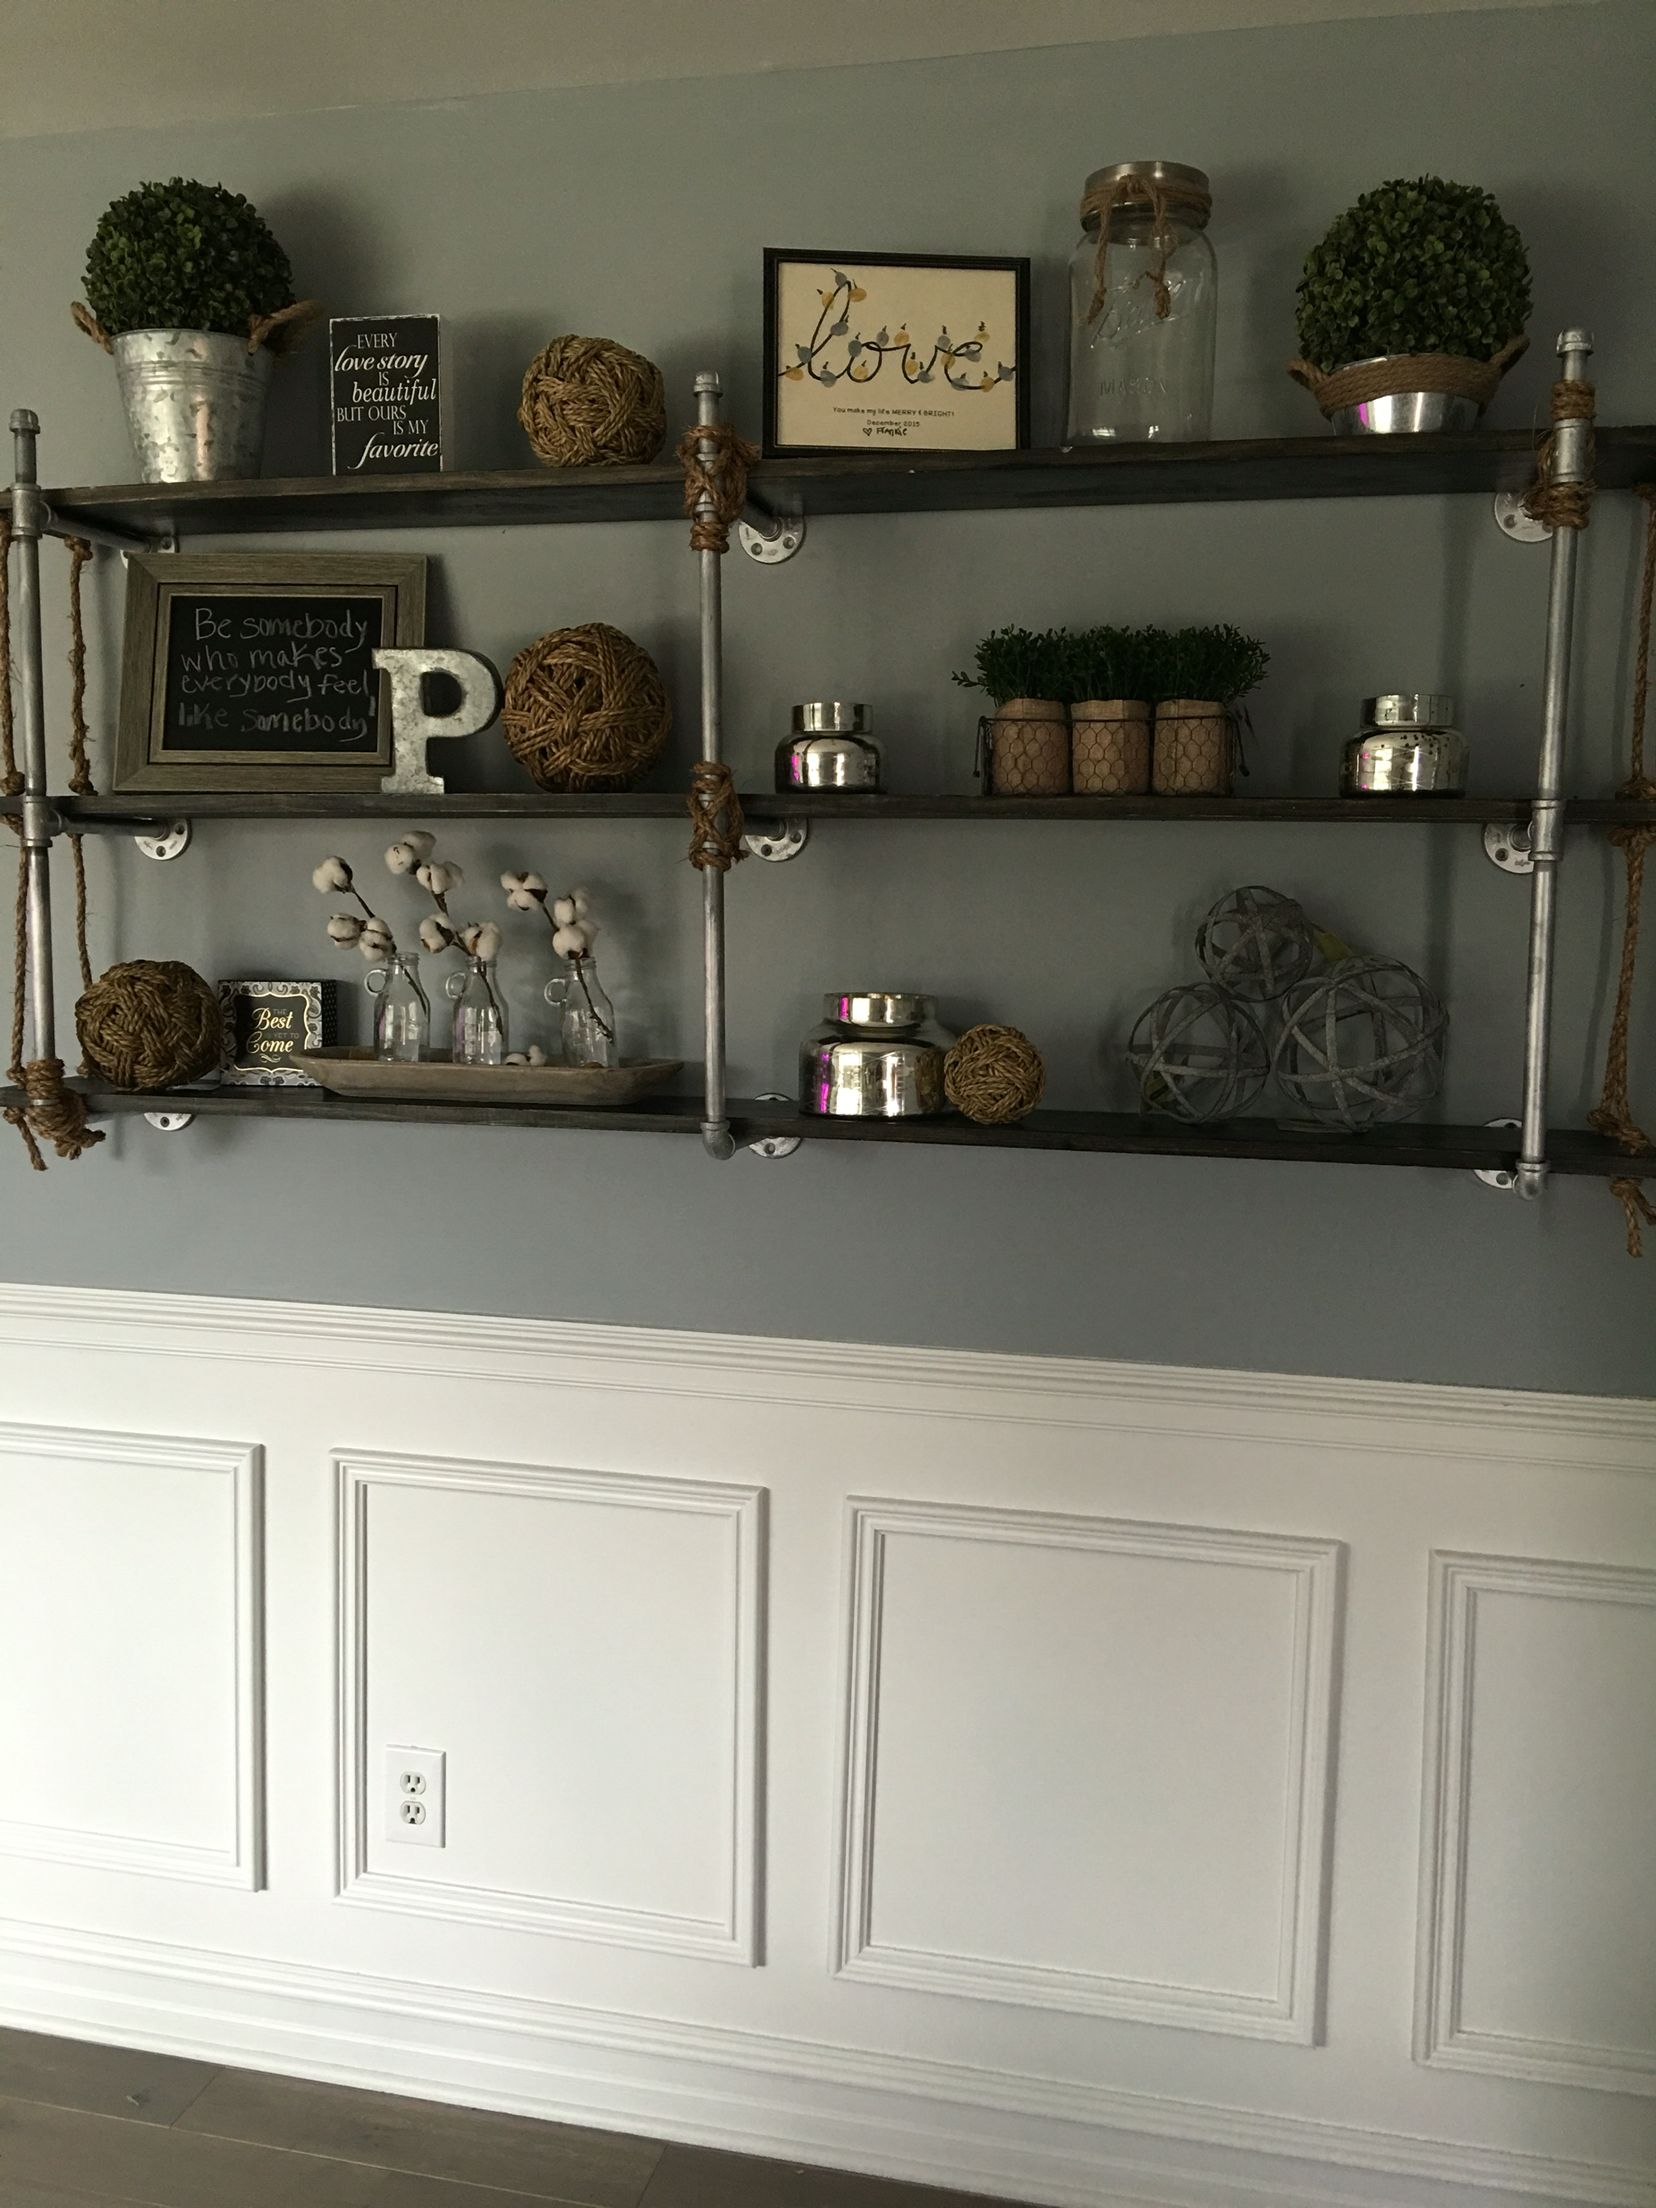 Wood And Plumbers Pipe With Rope Shelves Built By My Husband